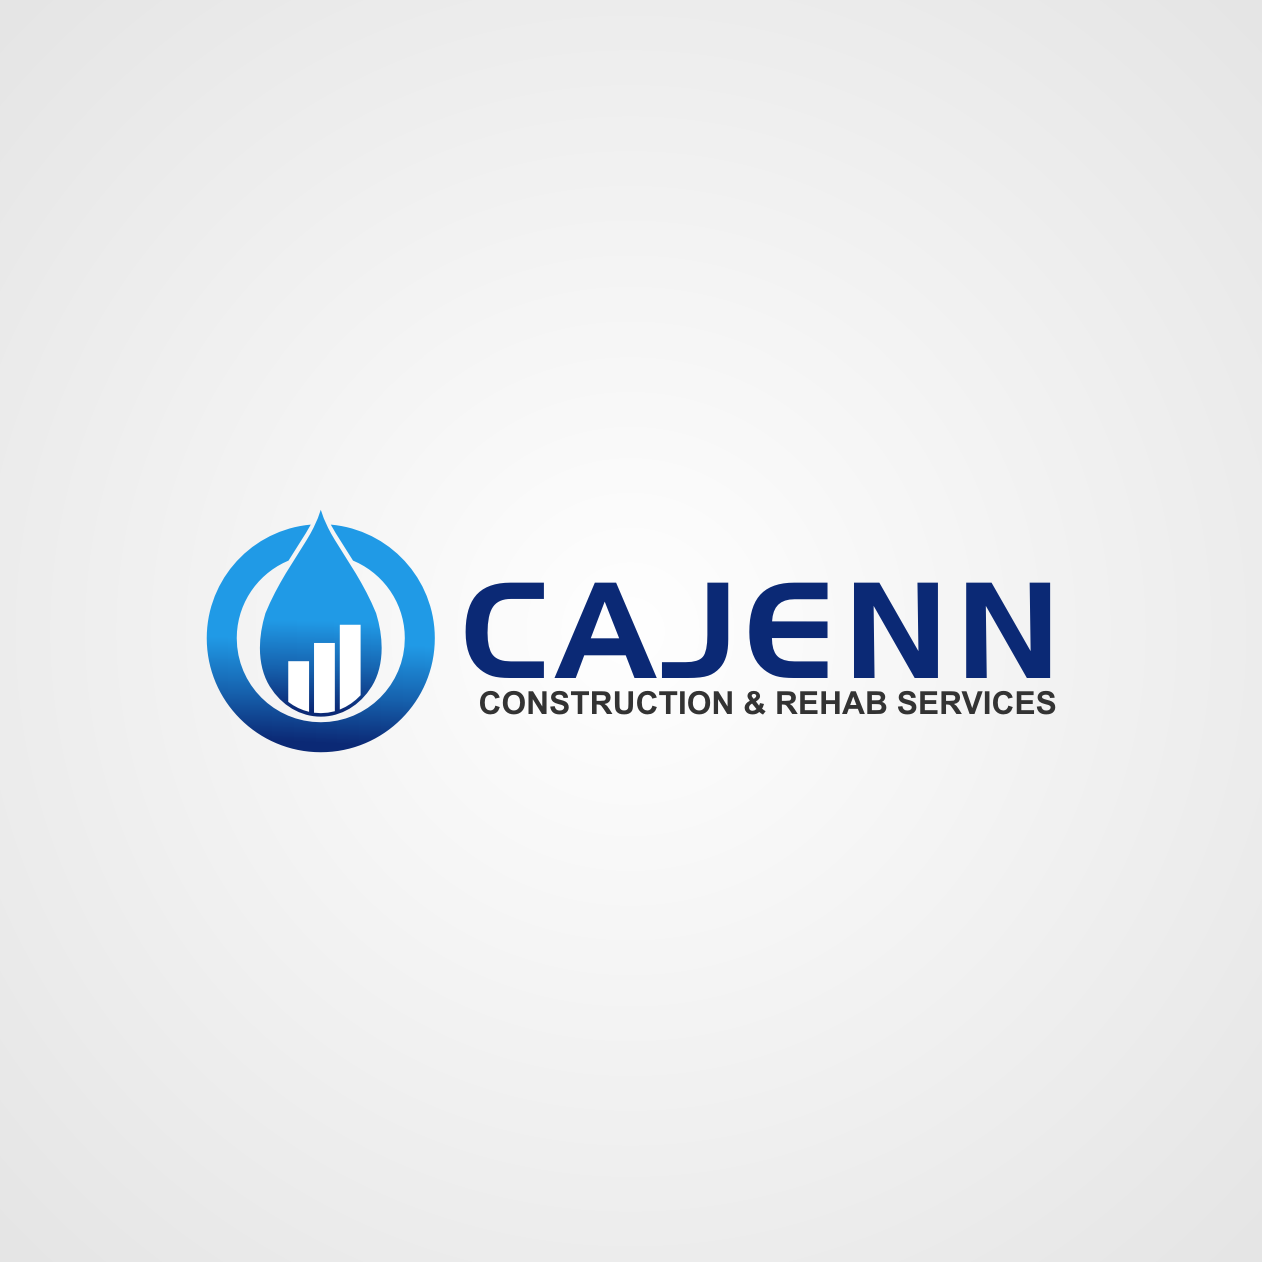 Logo Design by rifatz - Entry No. 269 in the Logo Design Contest New Logo Design for CaJenn Construction & Rehab Services.